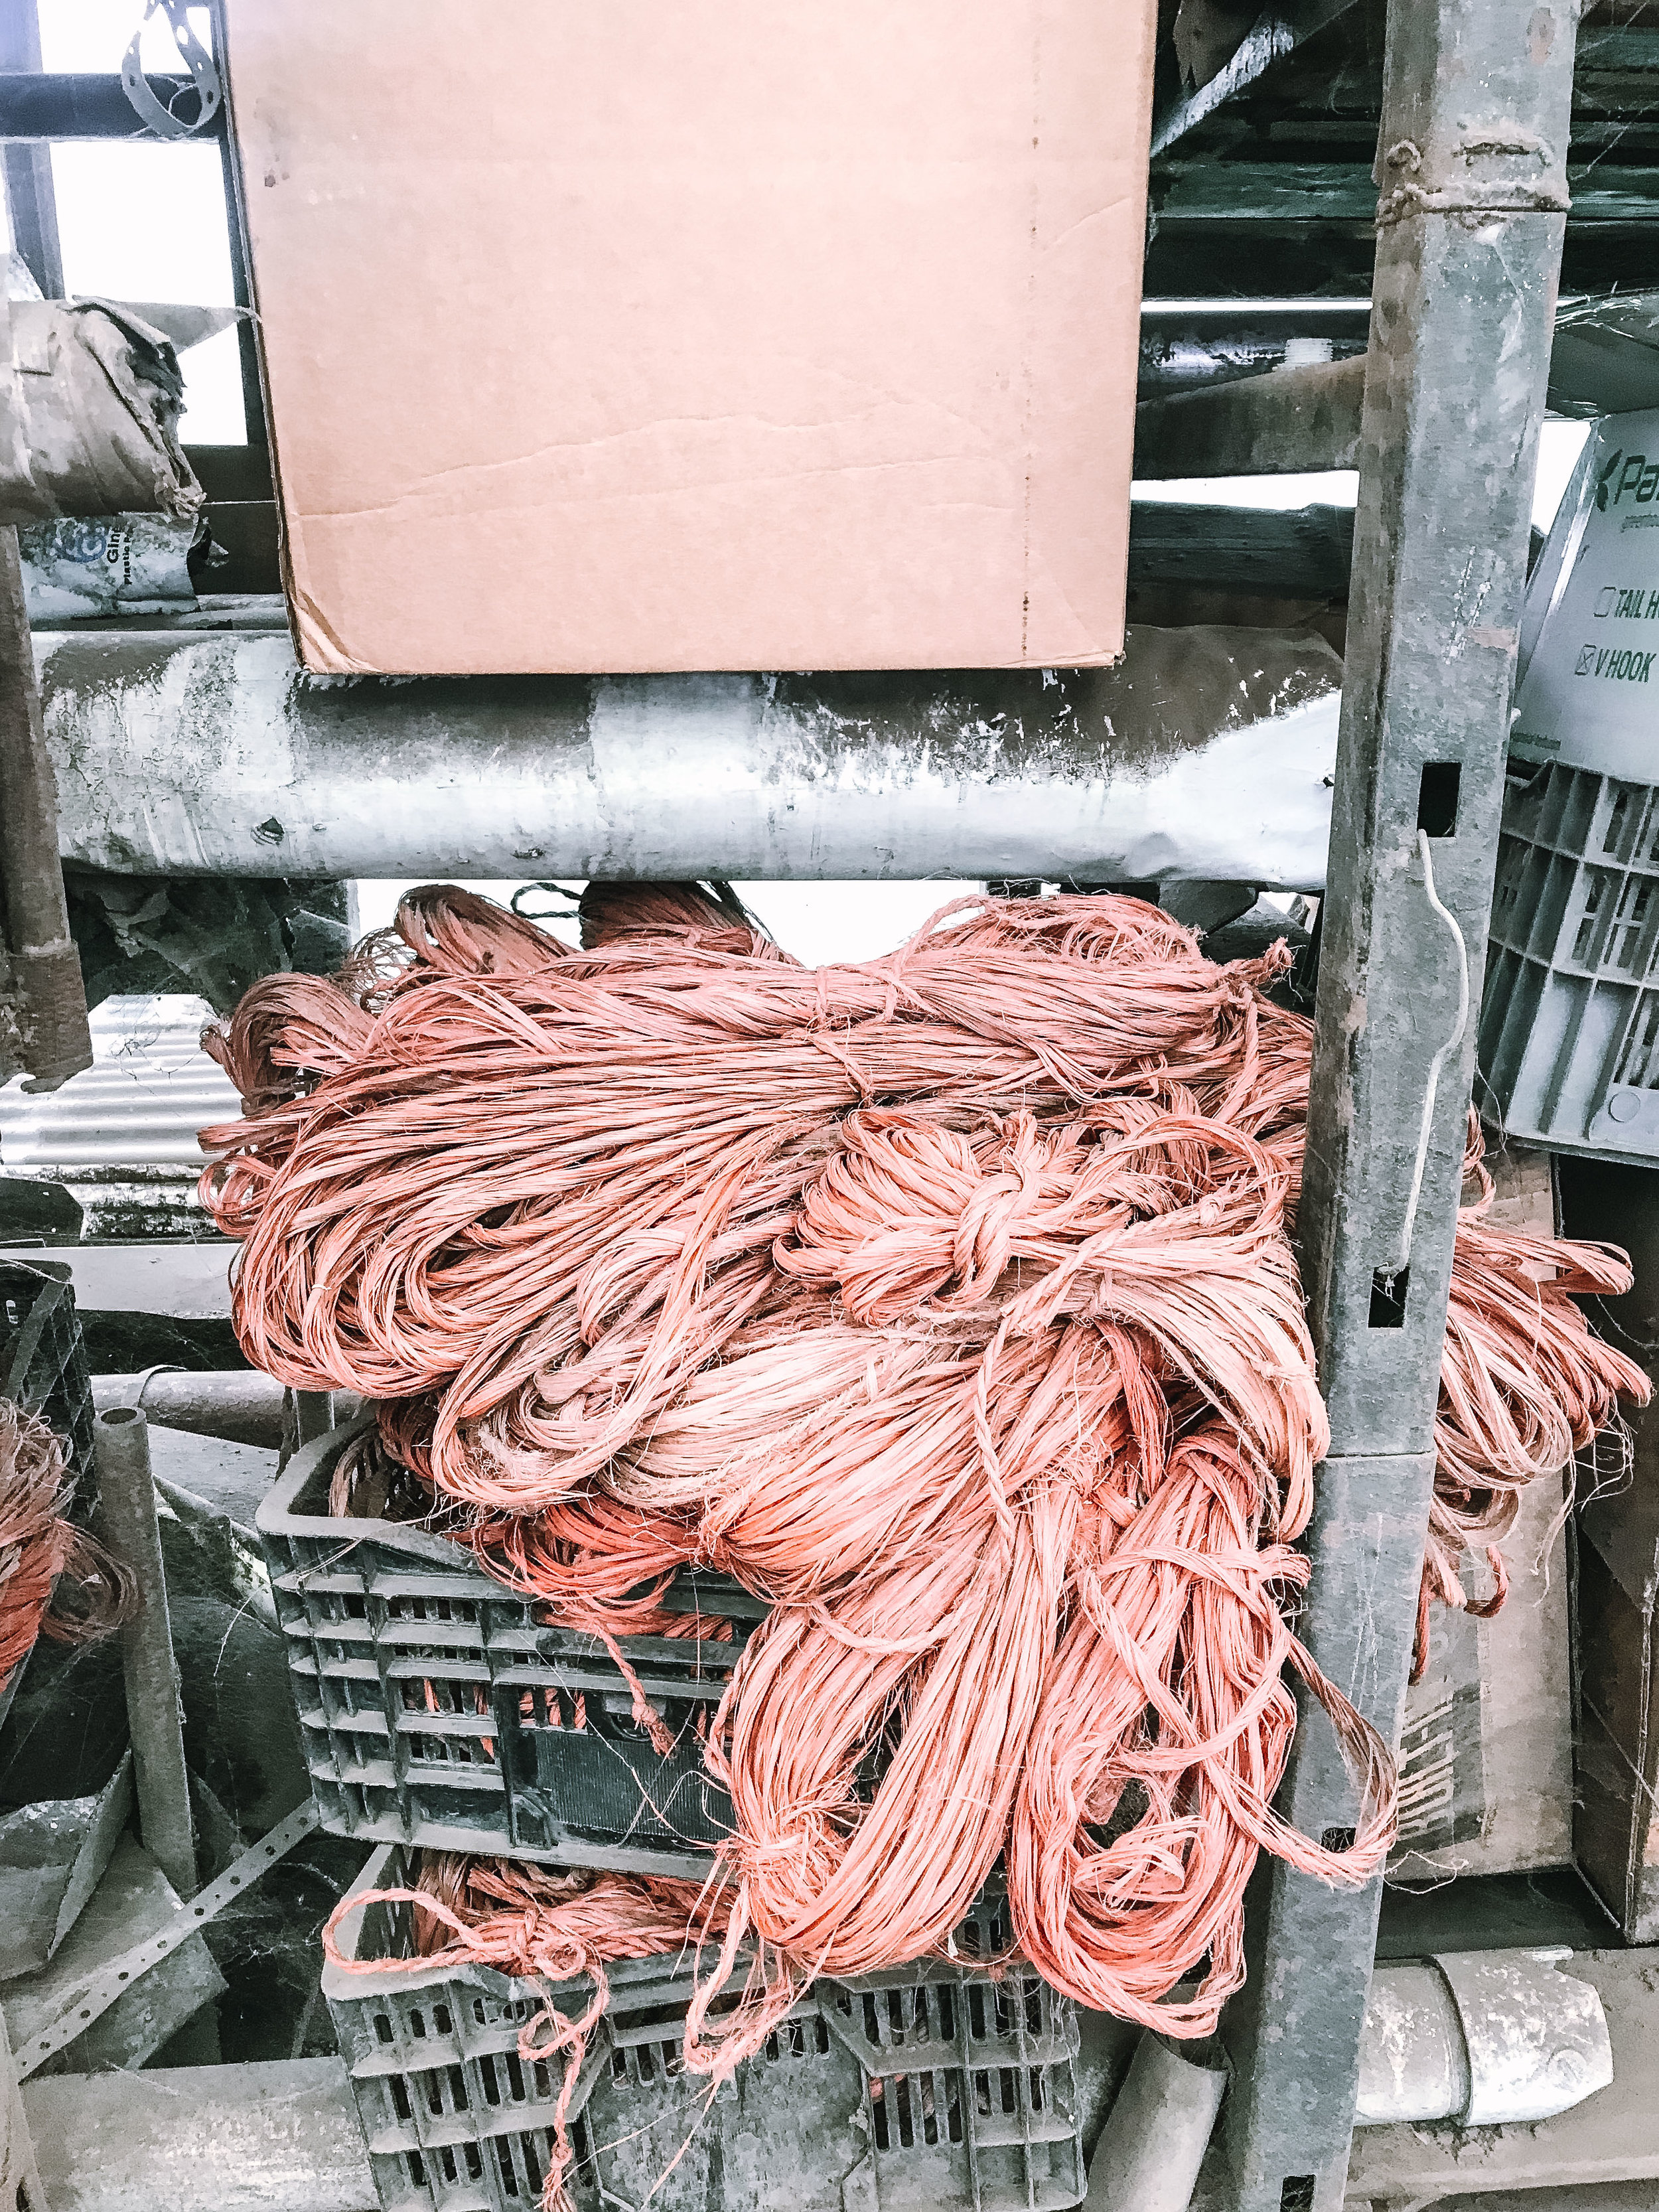 Decades-old ropes still being reused